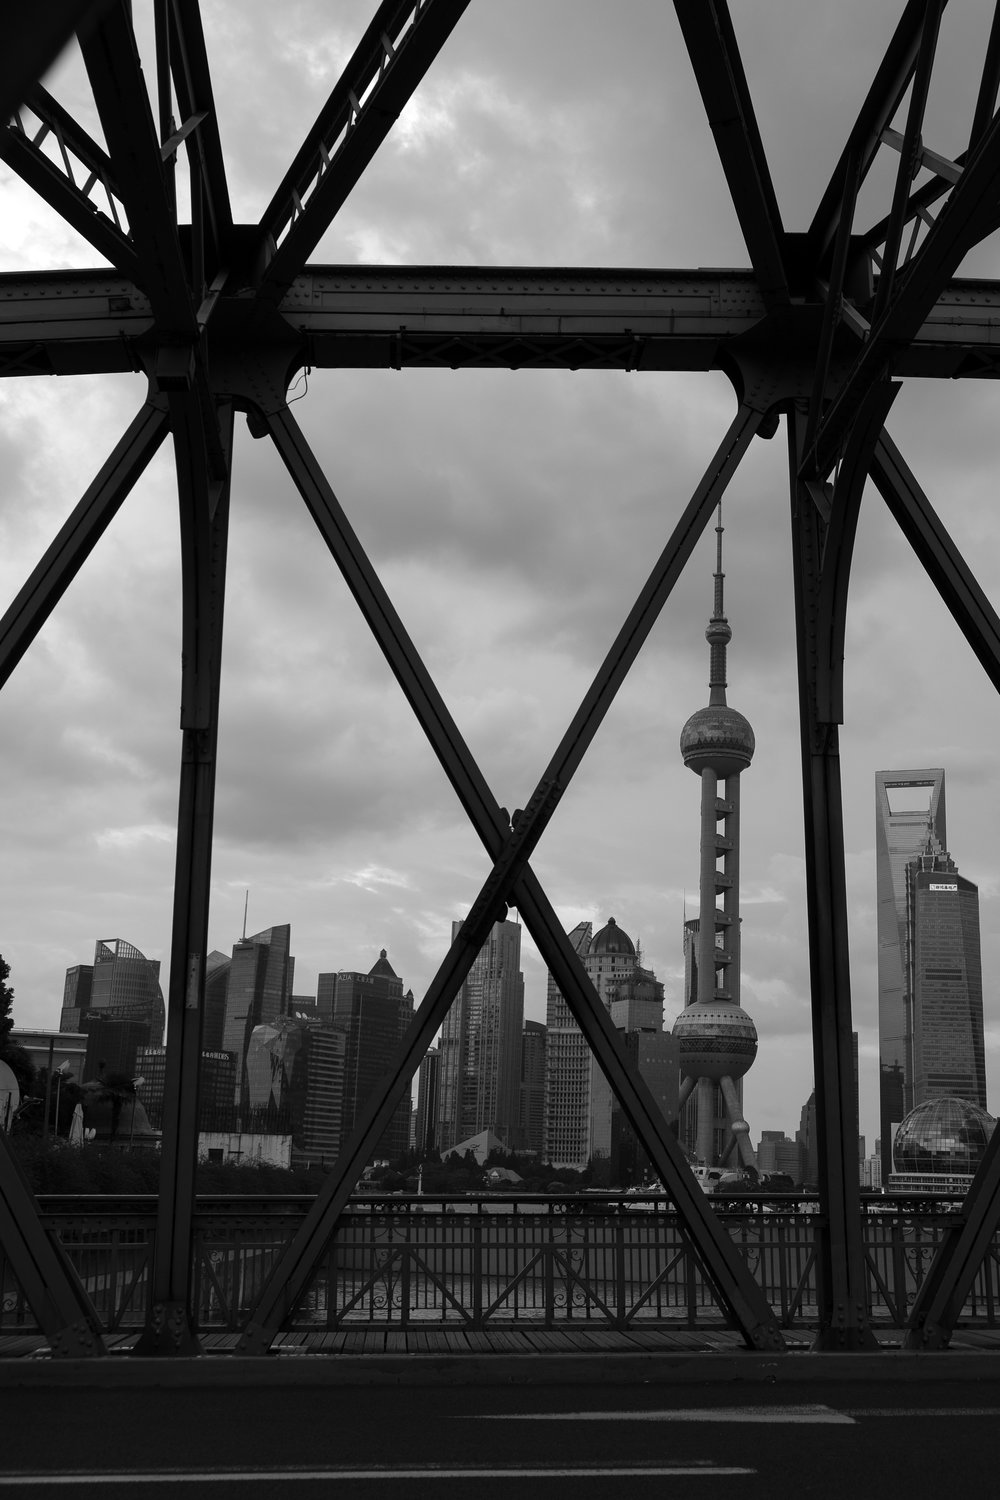 Skyline from Waibaidu Bridge, Shanghai